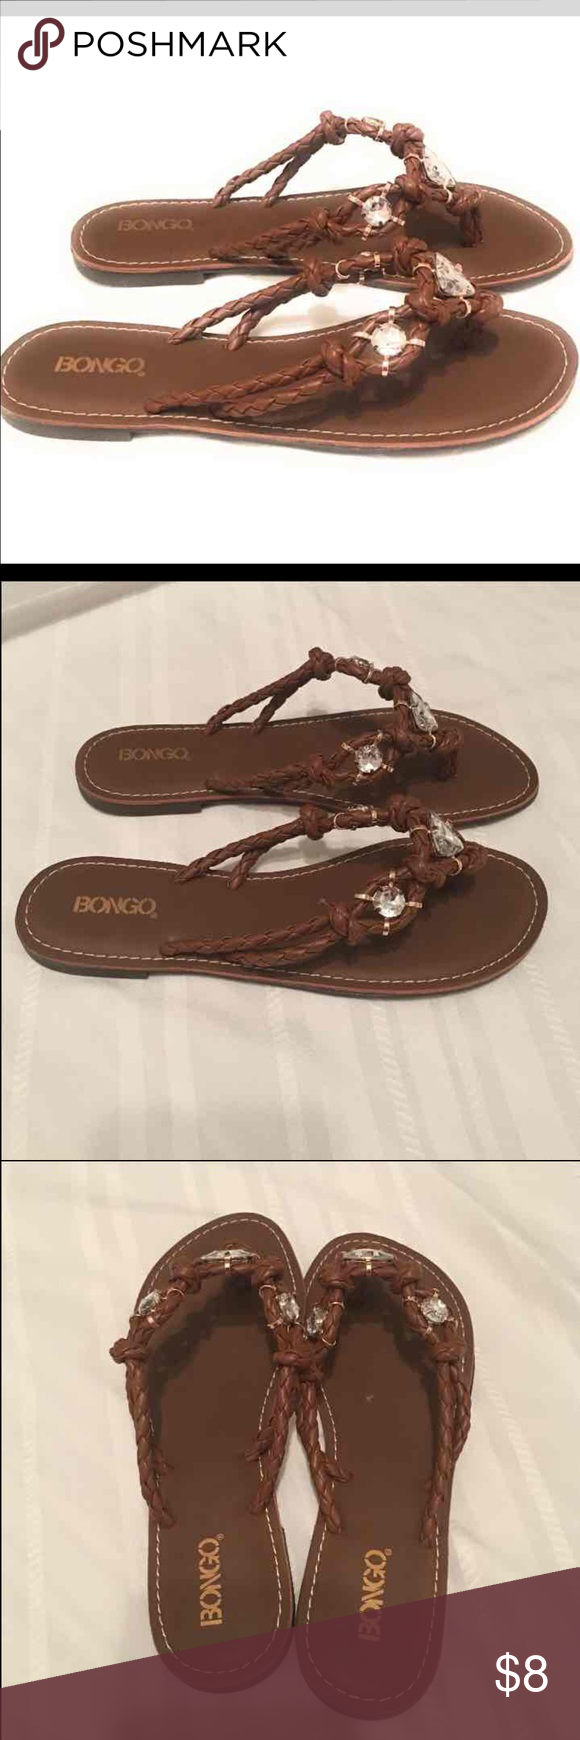 3174d73c0 Bongo women flip flop New Bongo women flip flop Brown Size 9m BONGO Shoes  Sandals